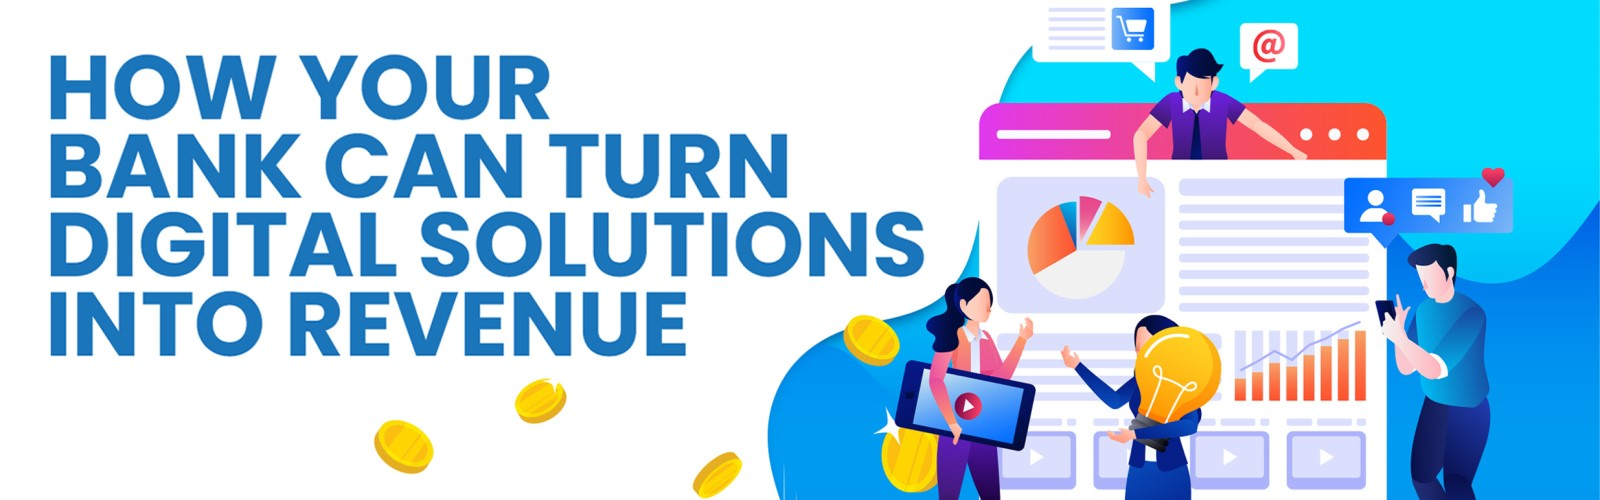 How-Banks-Can-Turn-Digital-Solutions-into-Revenue---1600x528